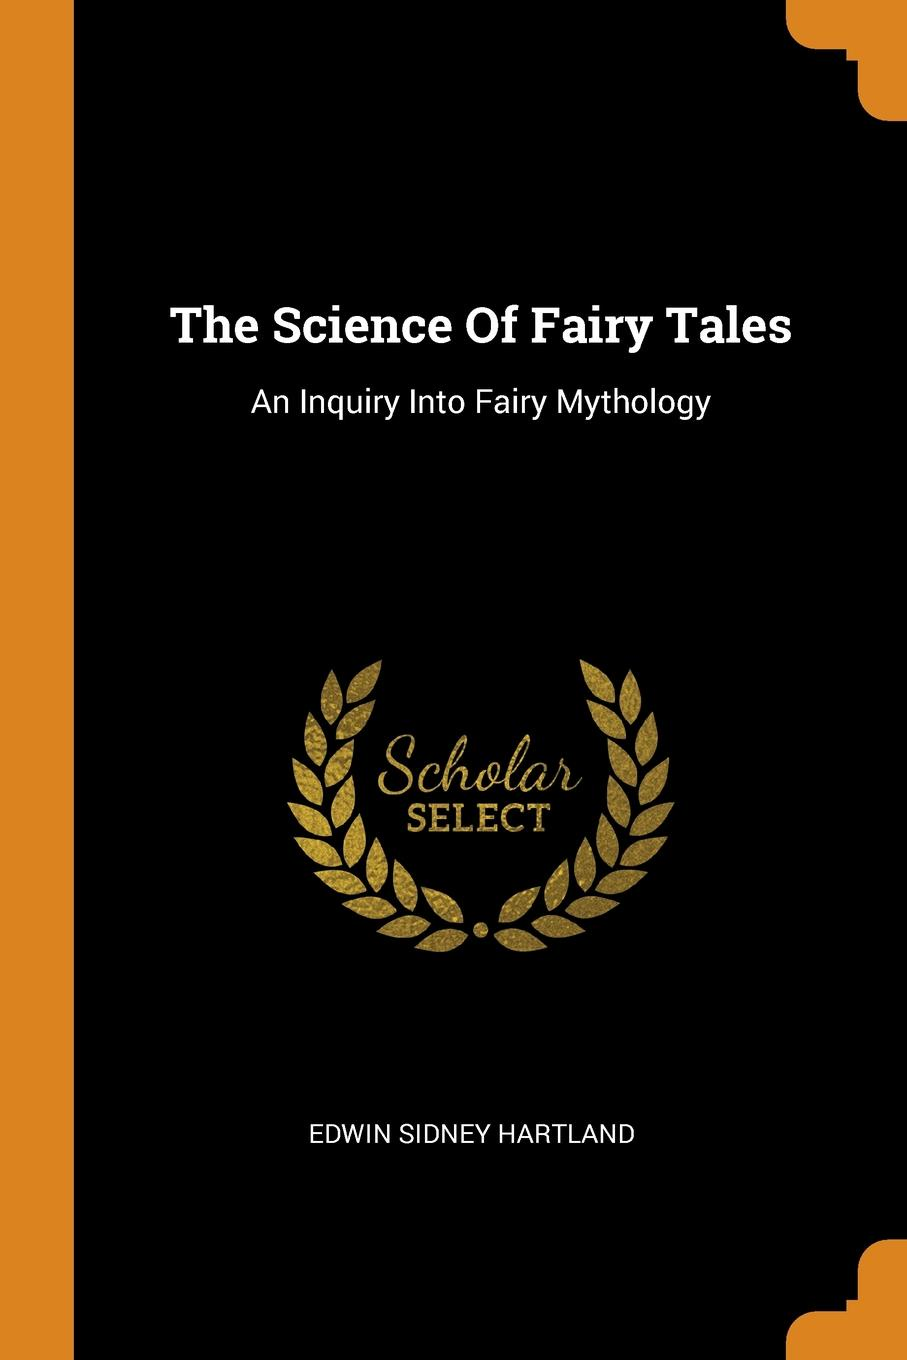 Edwin Sidney Hartland The Science Of Fairy Tales. An Inquiry Into Fairy Mythology